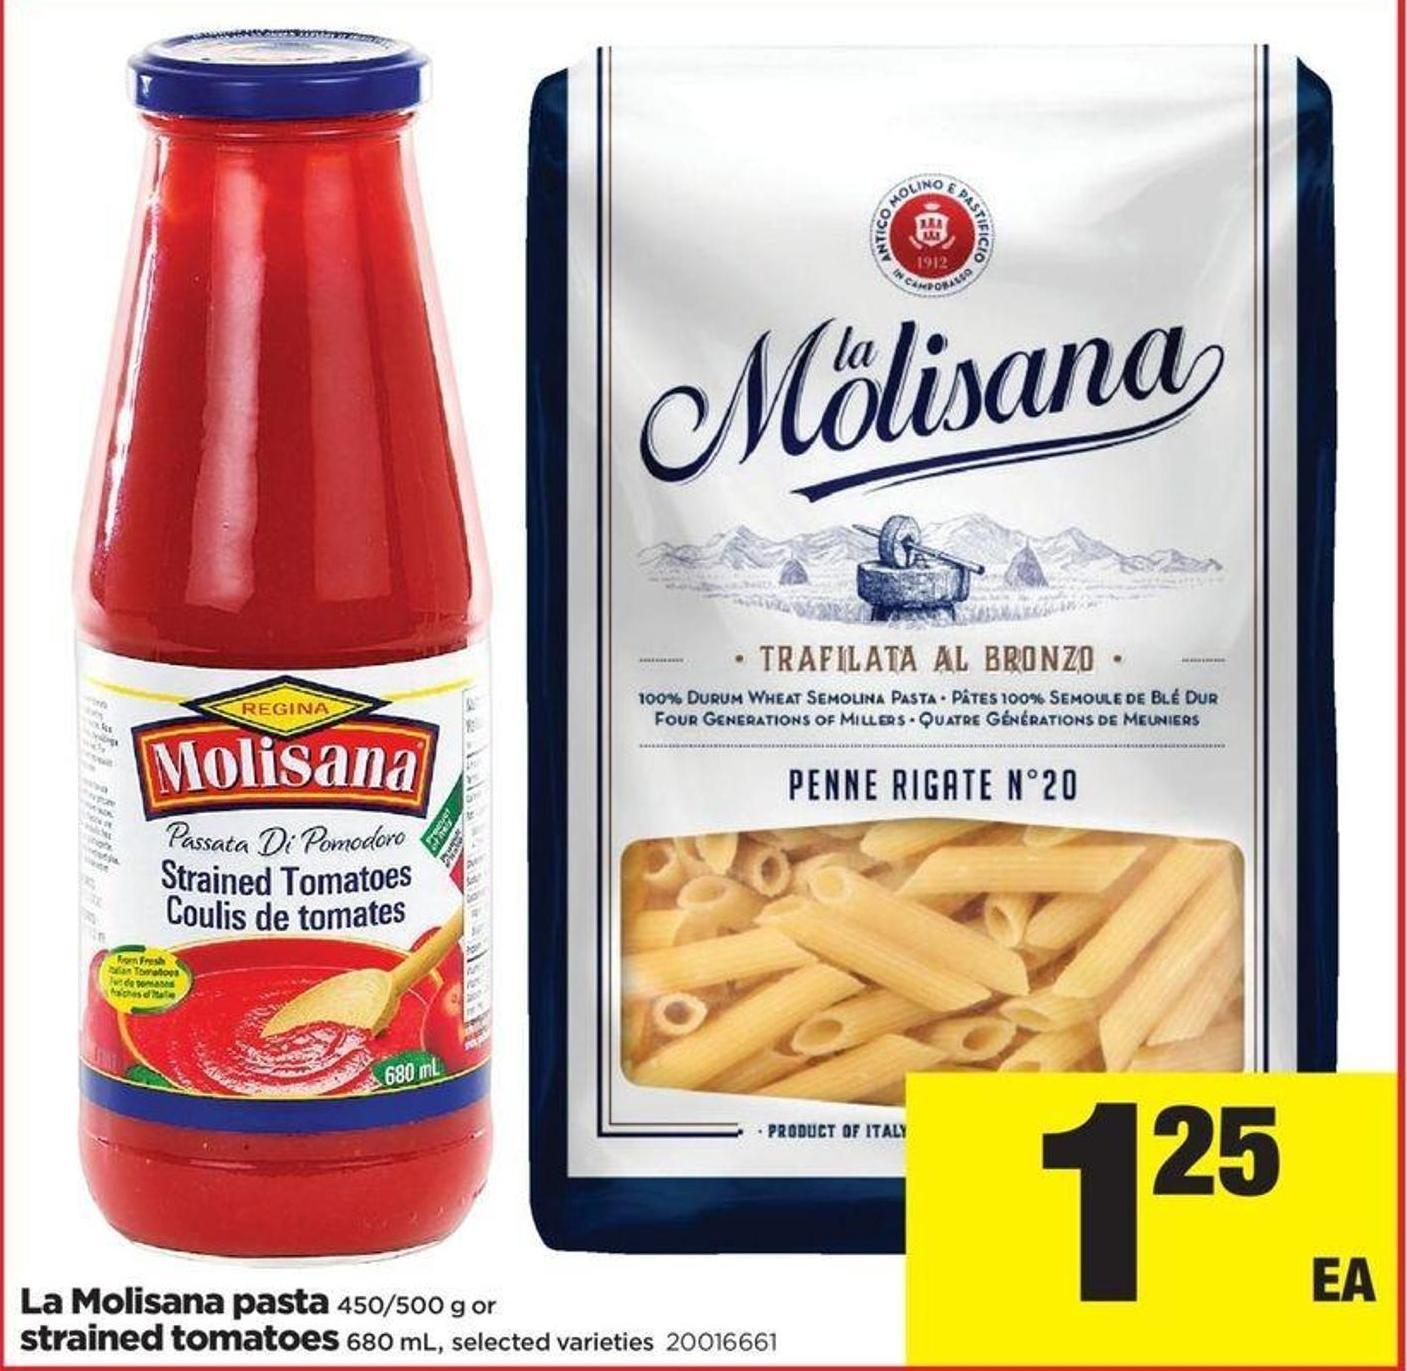 La Molisana Pasta 450/500 G Or Strained Tomatoes 680 ml